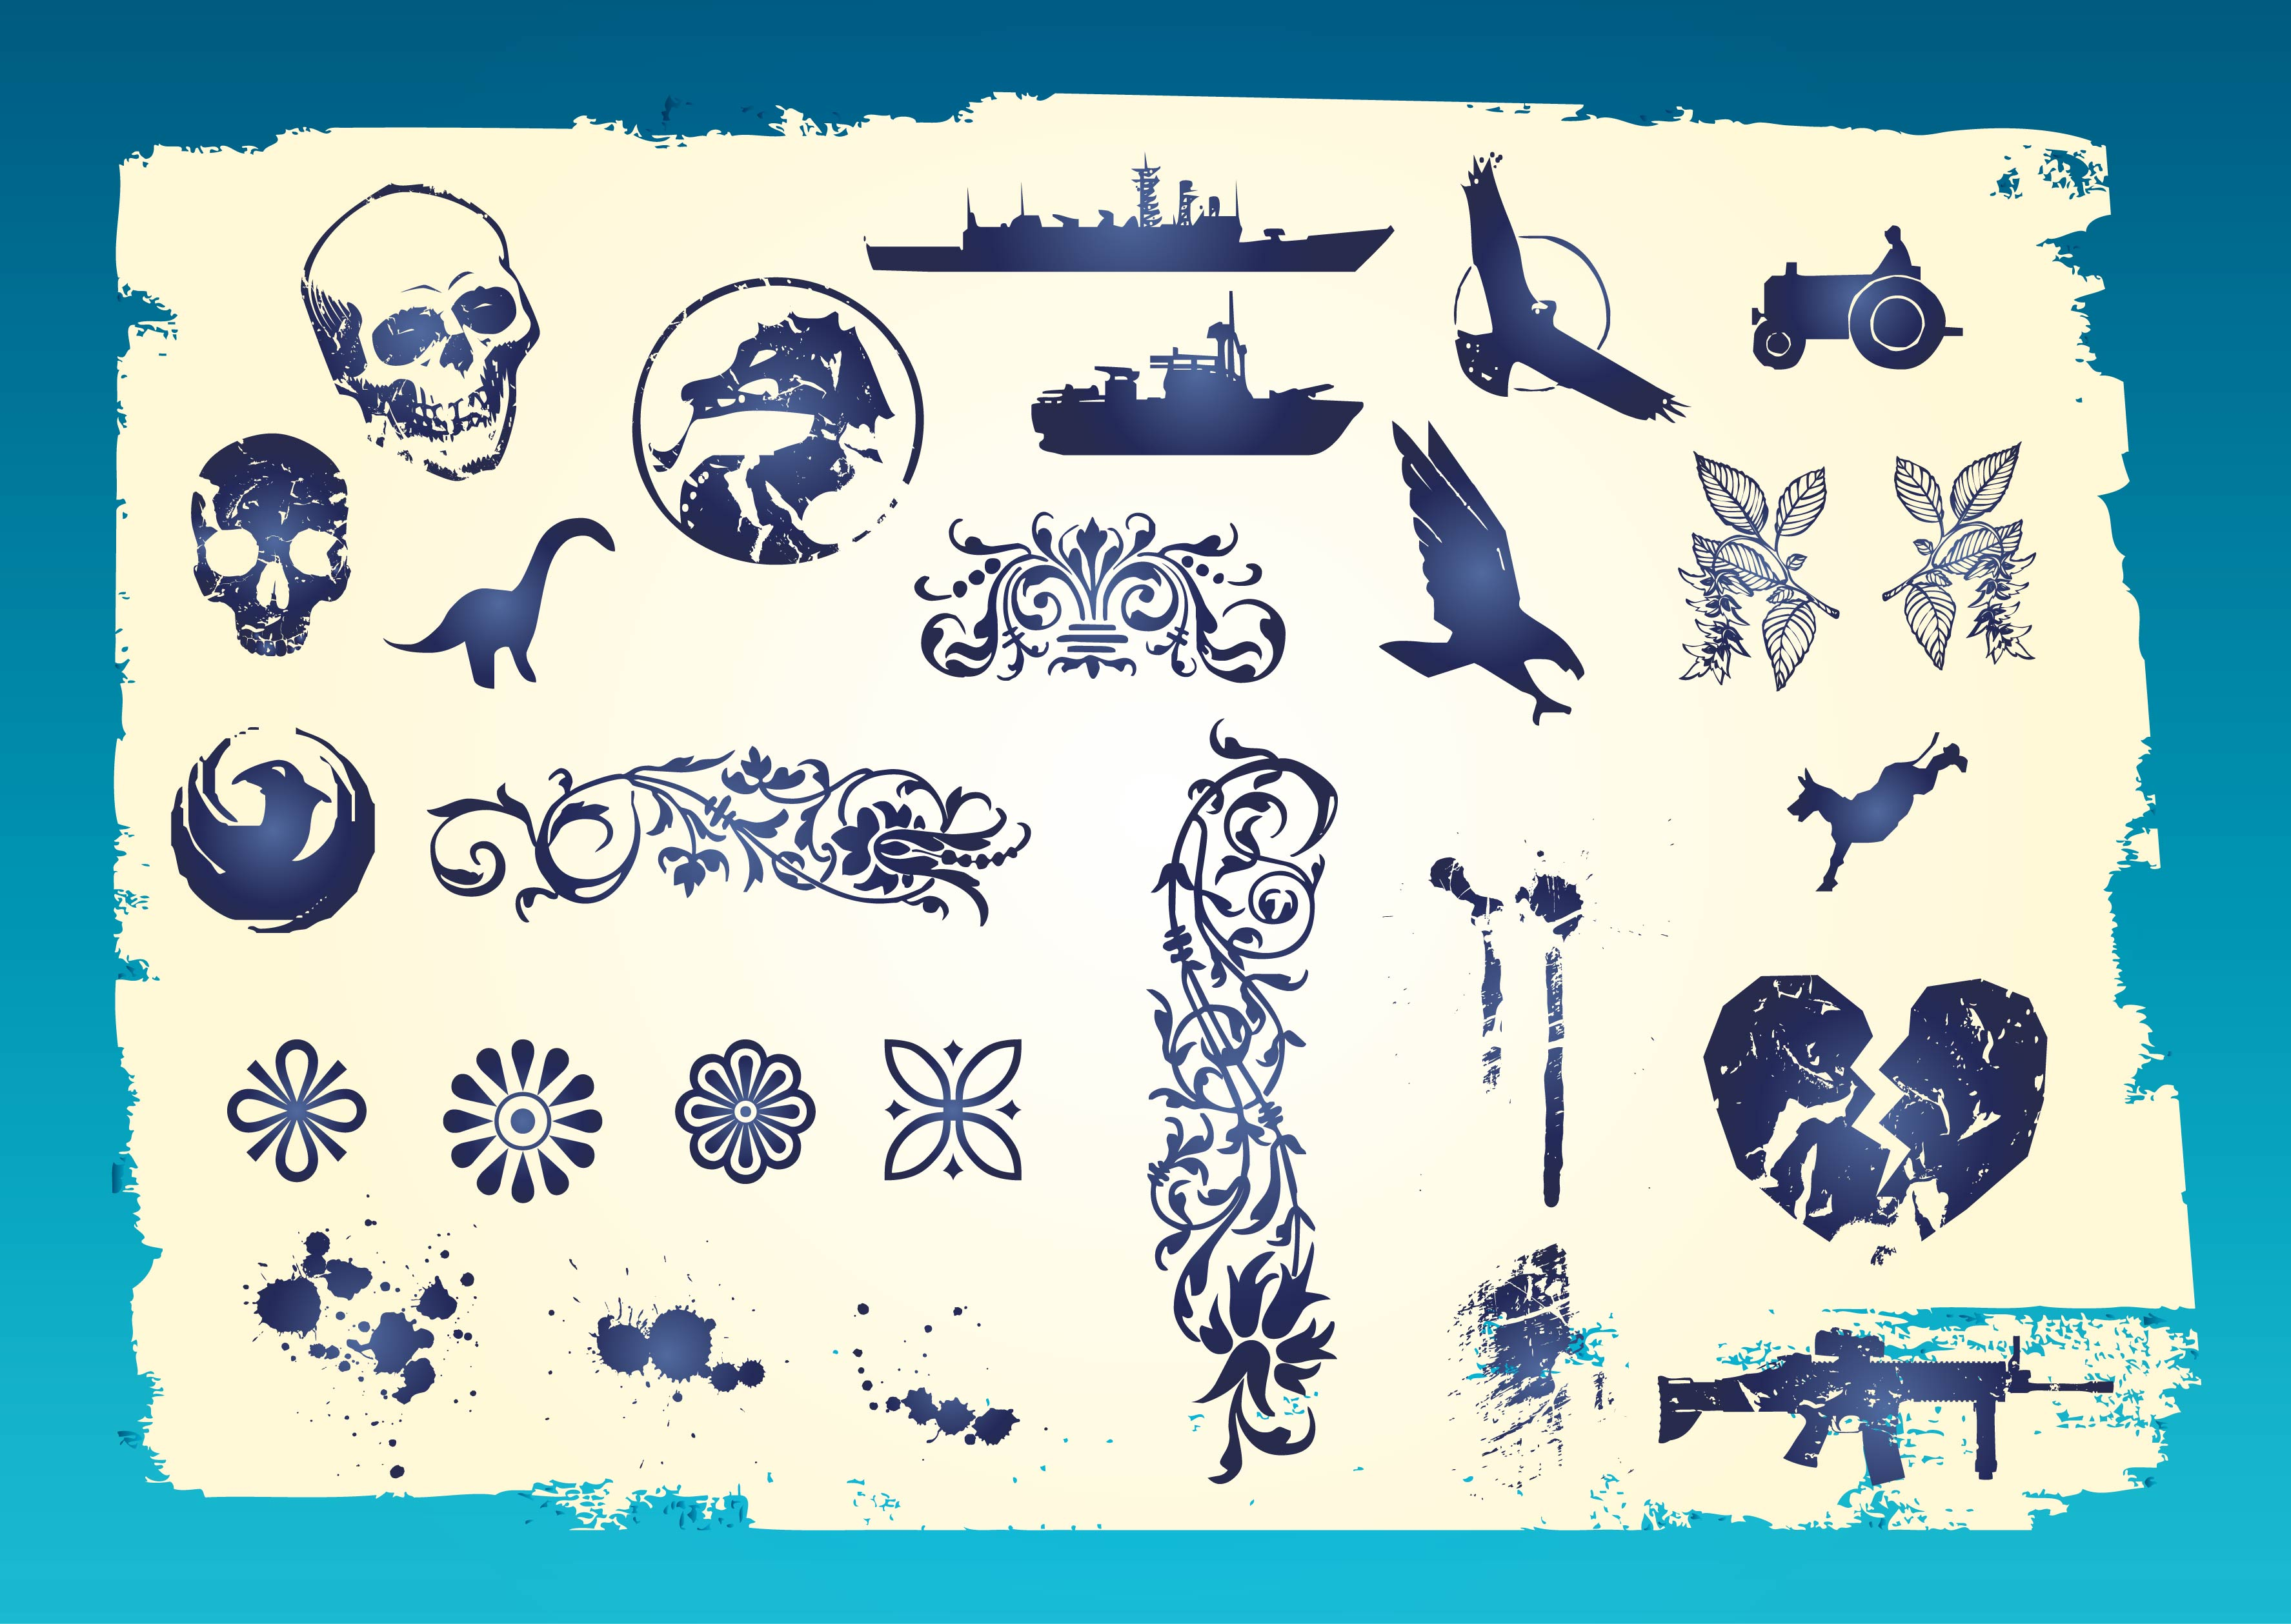 Grunge clipart Grunge drawings Download clipart Grunge